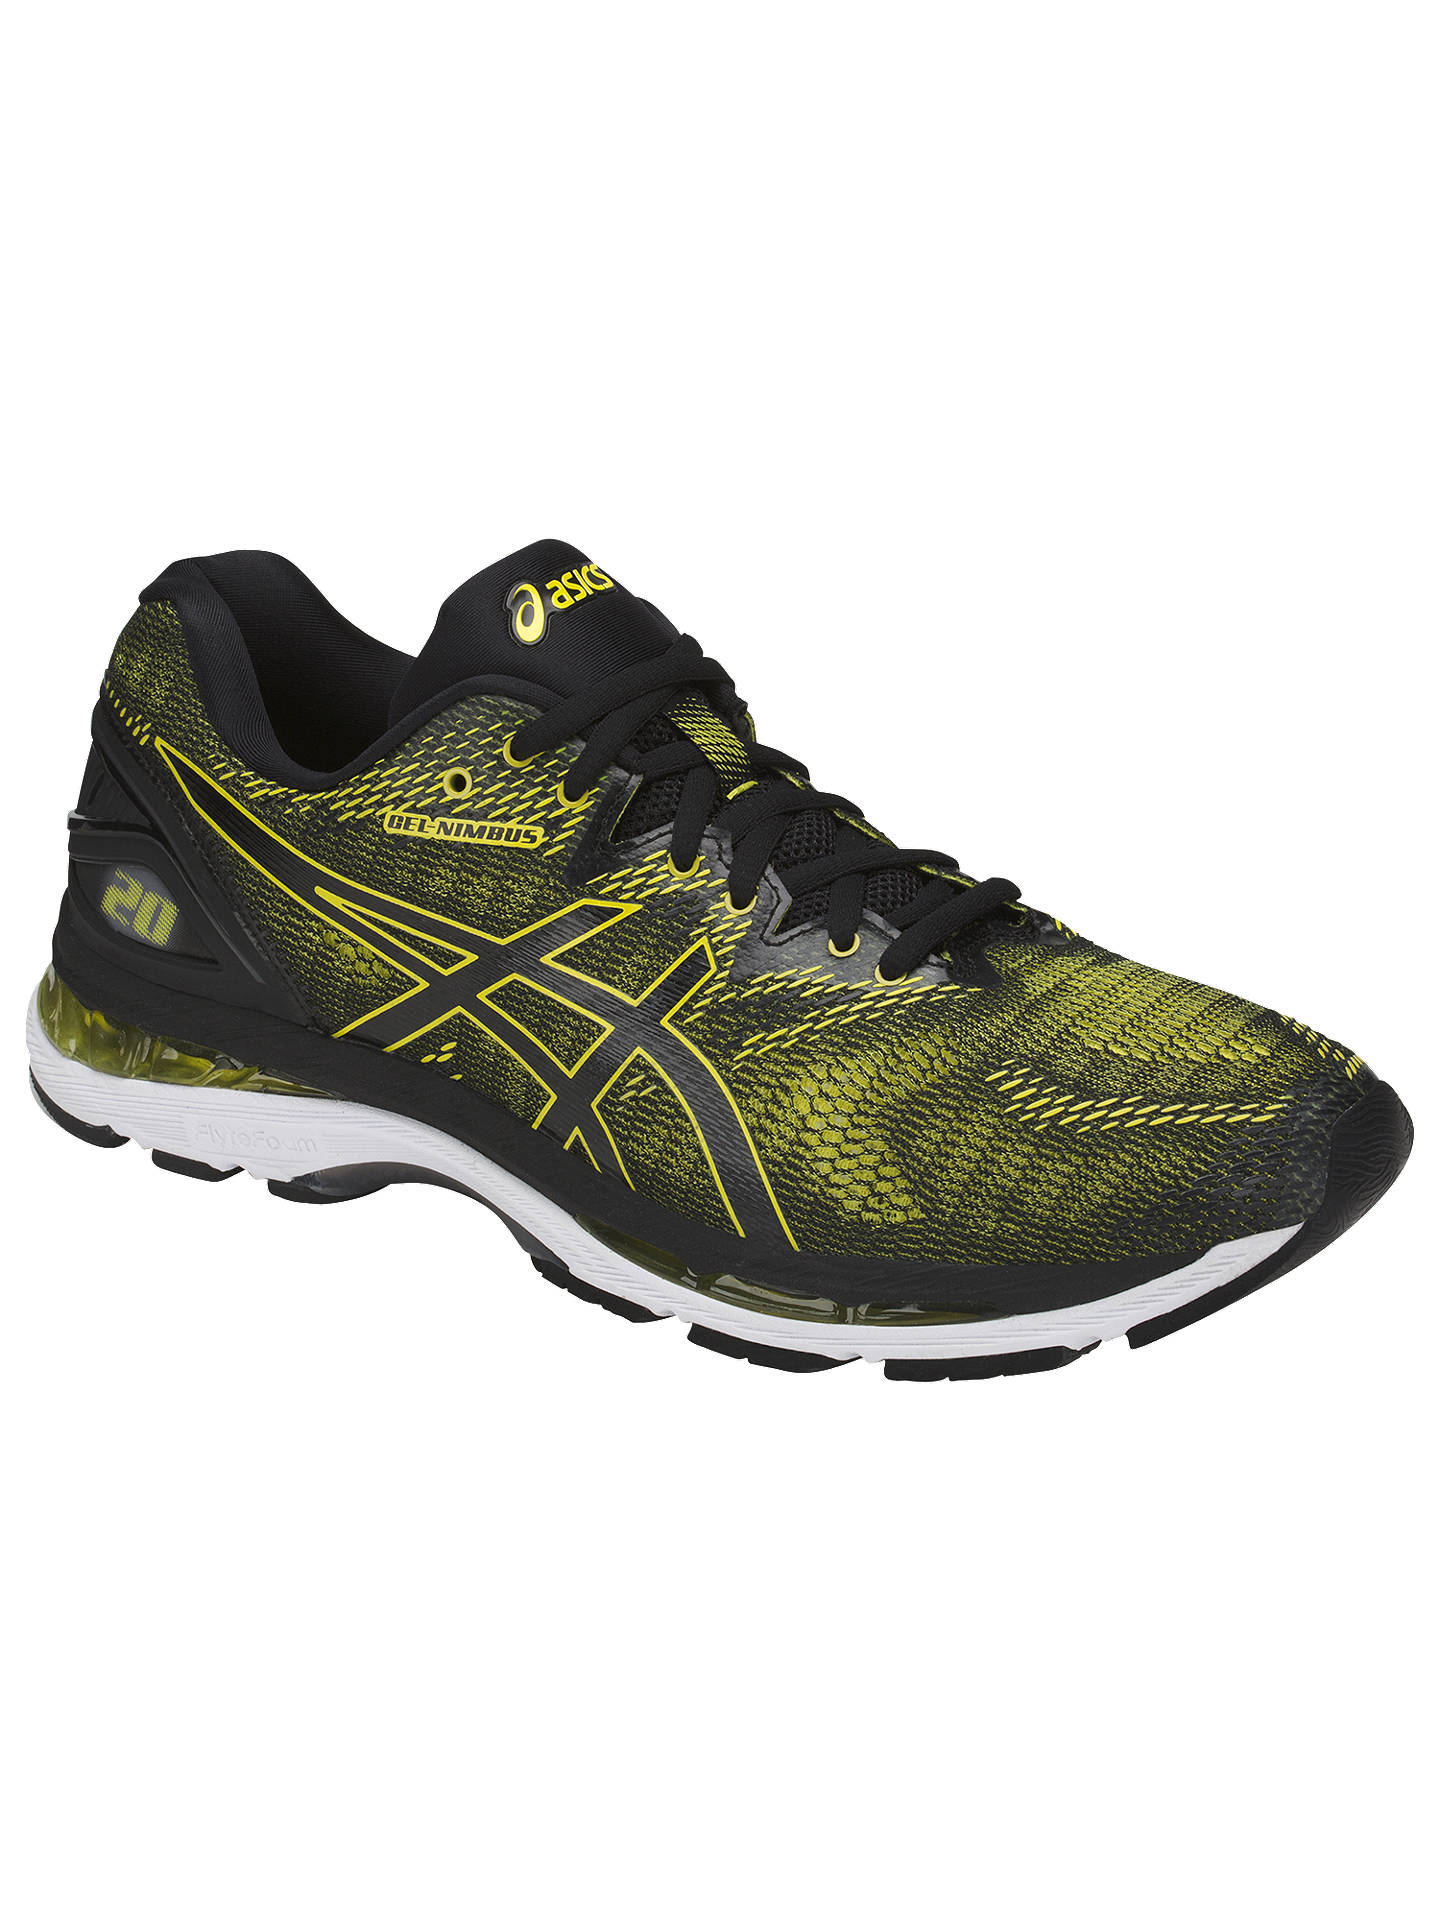 10.5) Asics Gel Nimbus 20 Mens Running